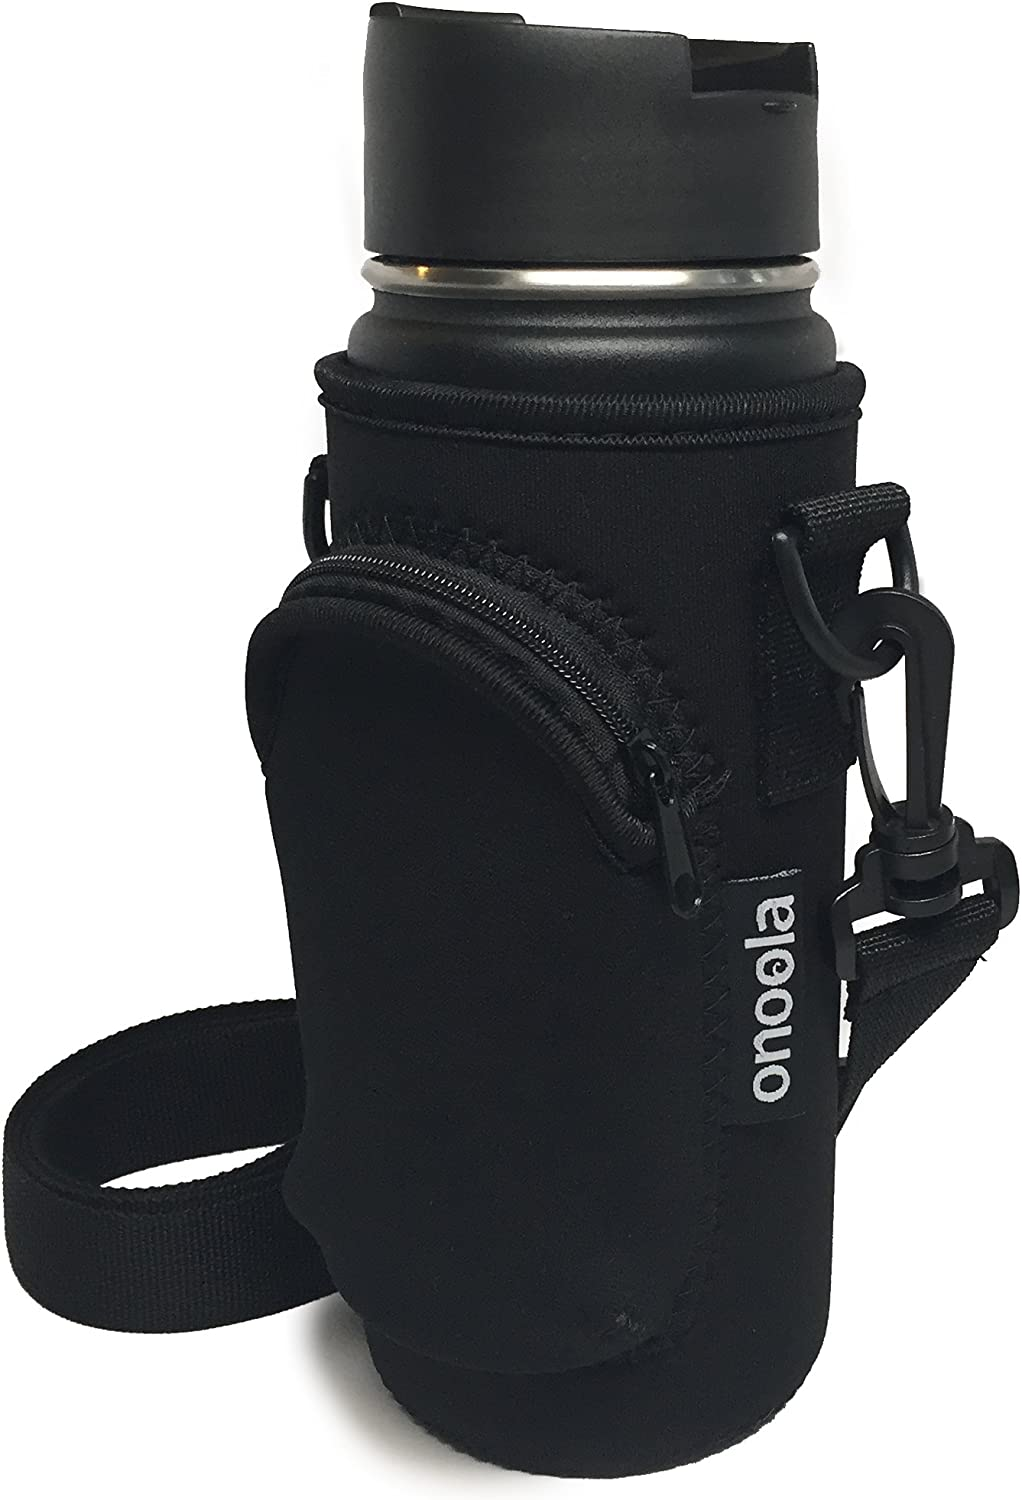 Onoola 18 oz (Also Fits 16, 20 & 21 oz) Pocket Carrier for Hydro Flask Type Bottles with Adjustable Straps (Neoprene Sleeve/Pouch)